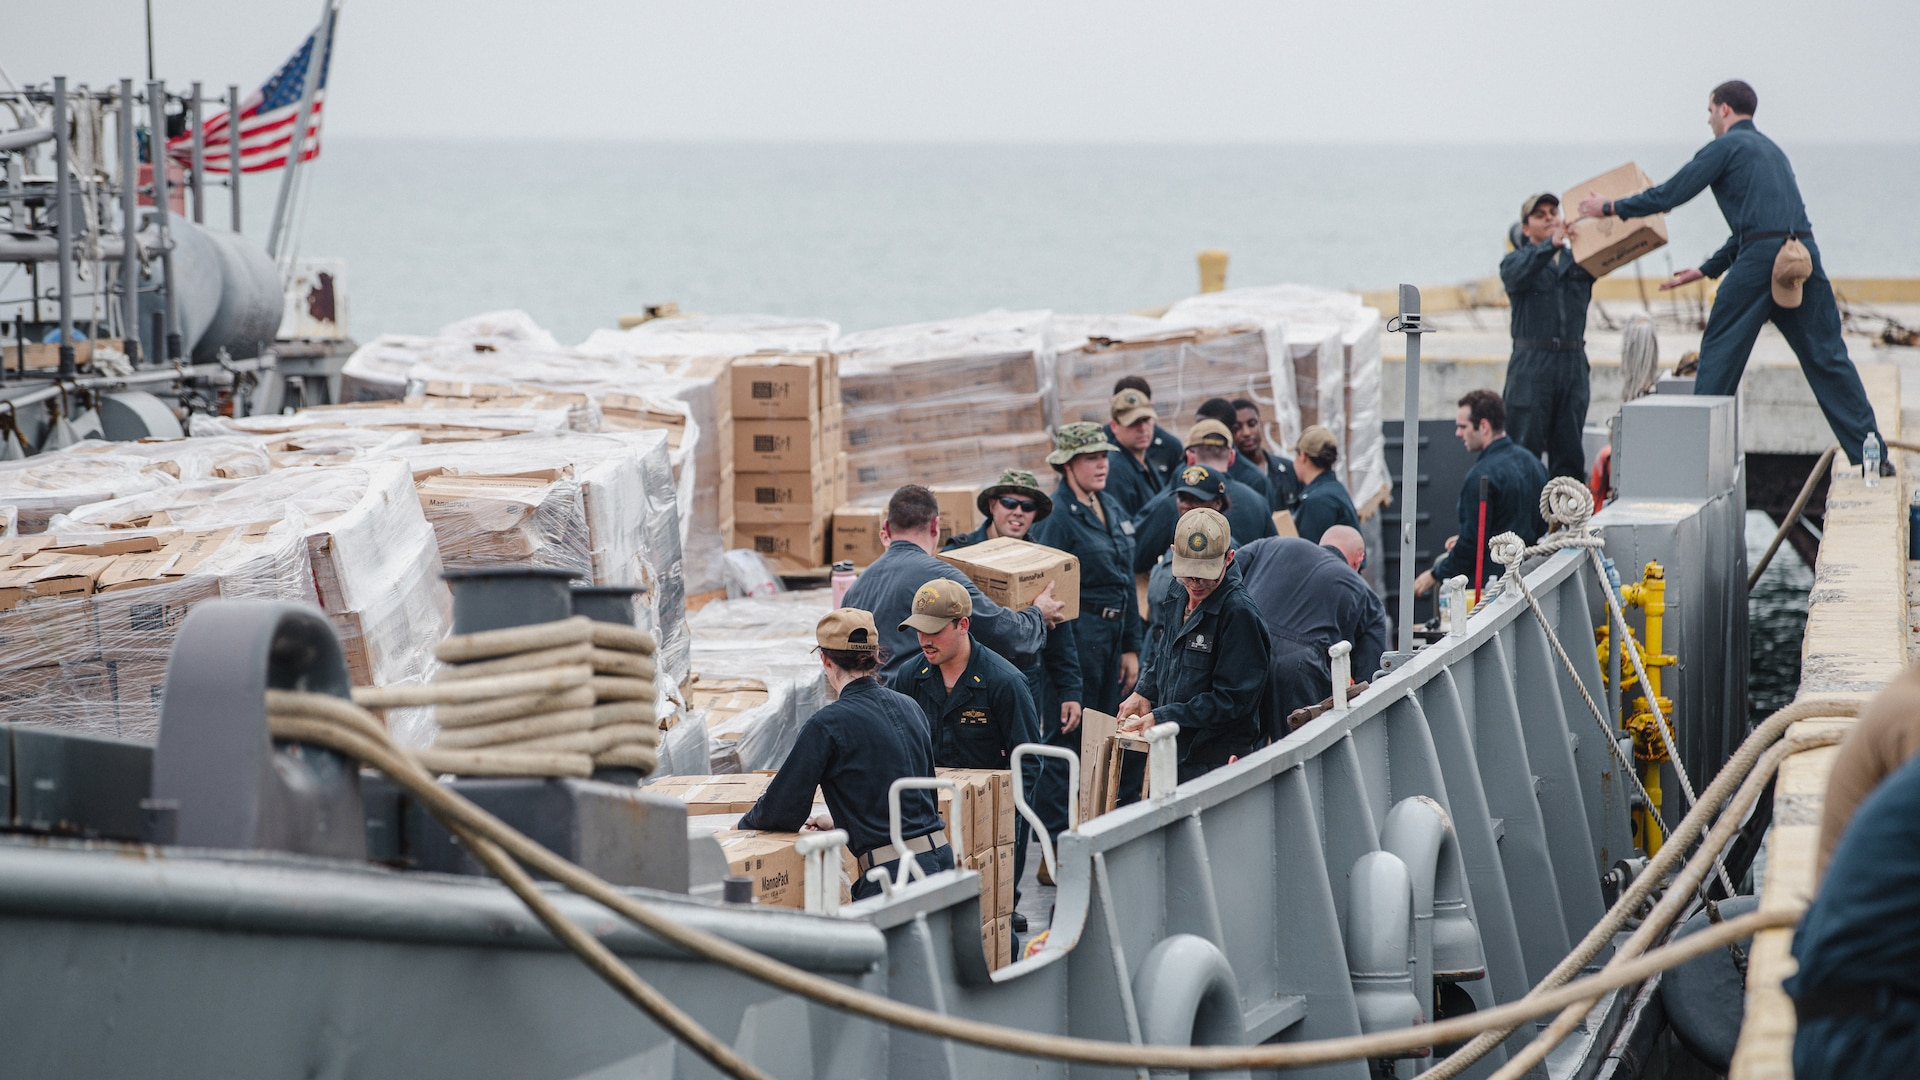 U.S. Marines and Sailors with Joint Task Force-Haiti (JTF-Haiti) and volunteers help offload boxes for redistribution in Port of Jeremie, Haiti.